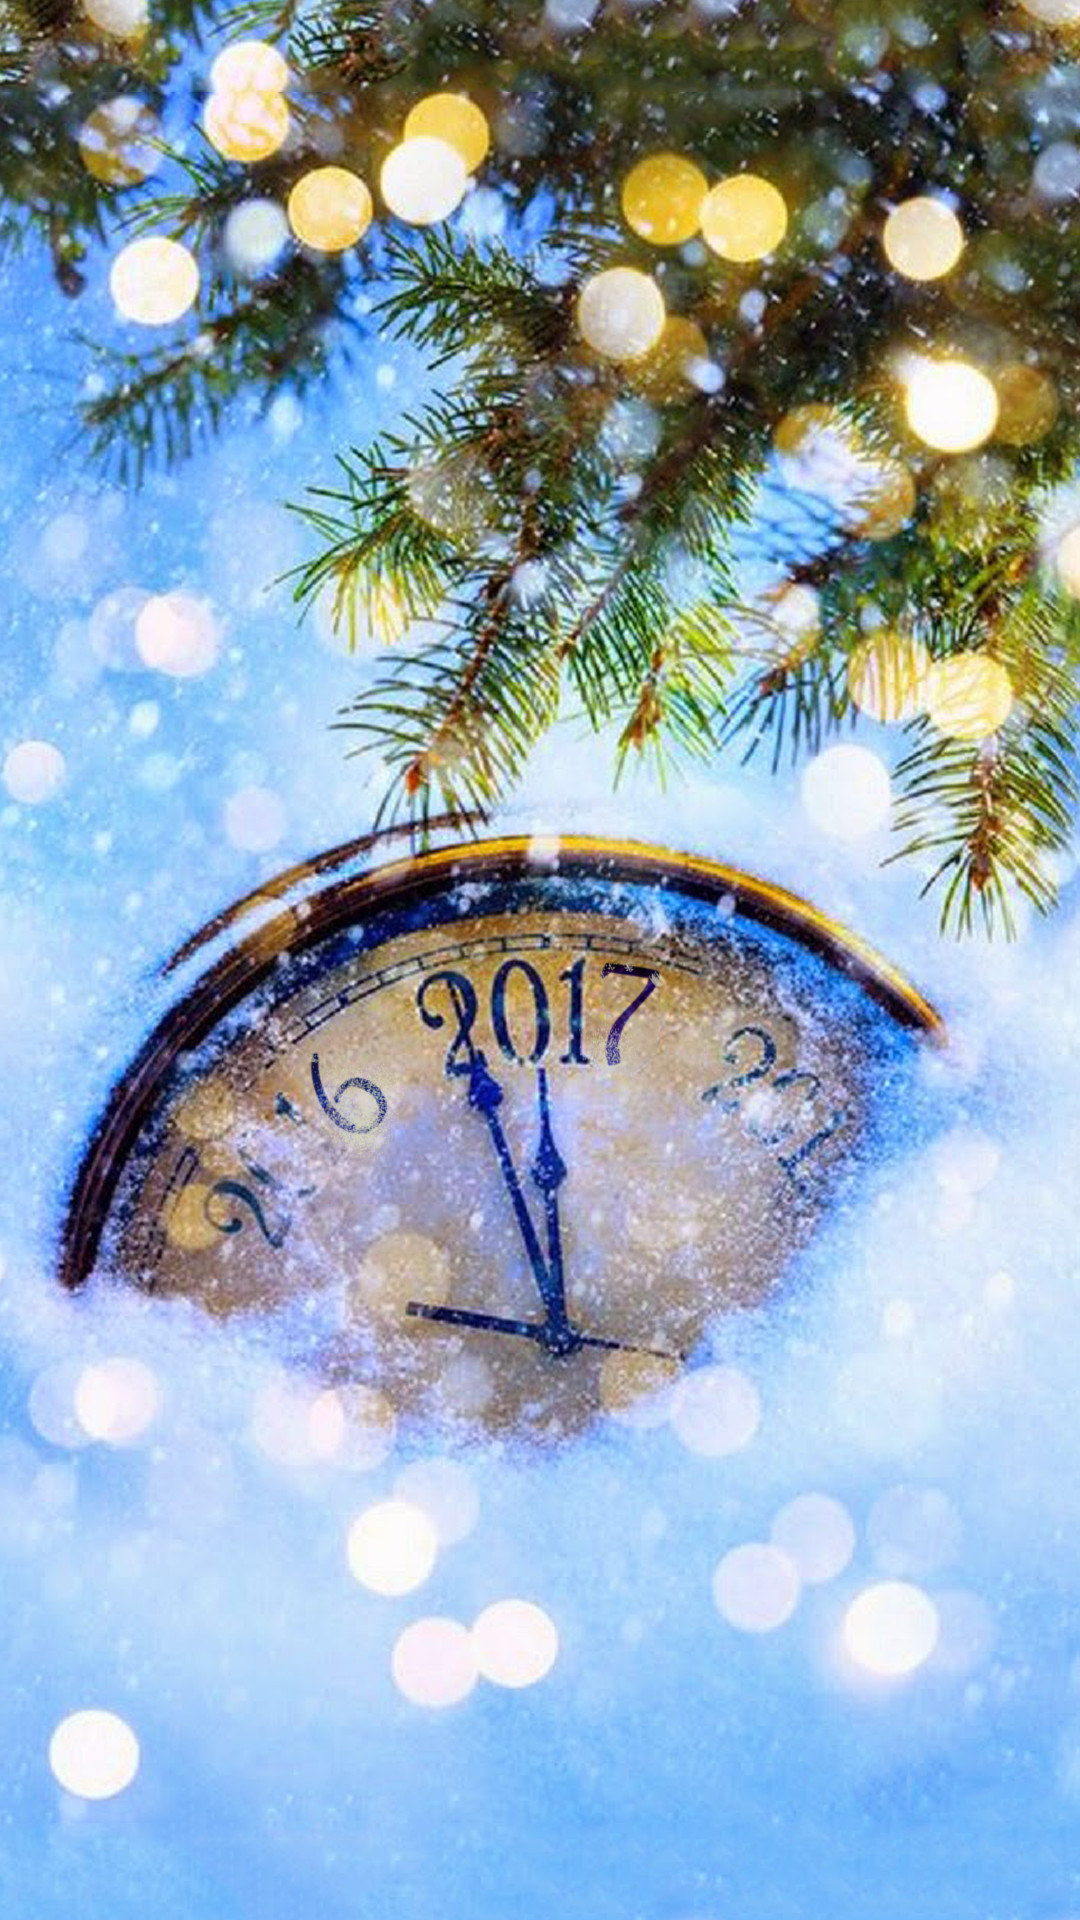 1080x1920 new year wallpaper phone 2017 holidays christmas iphone